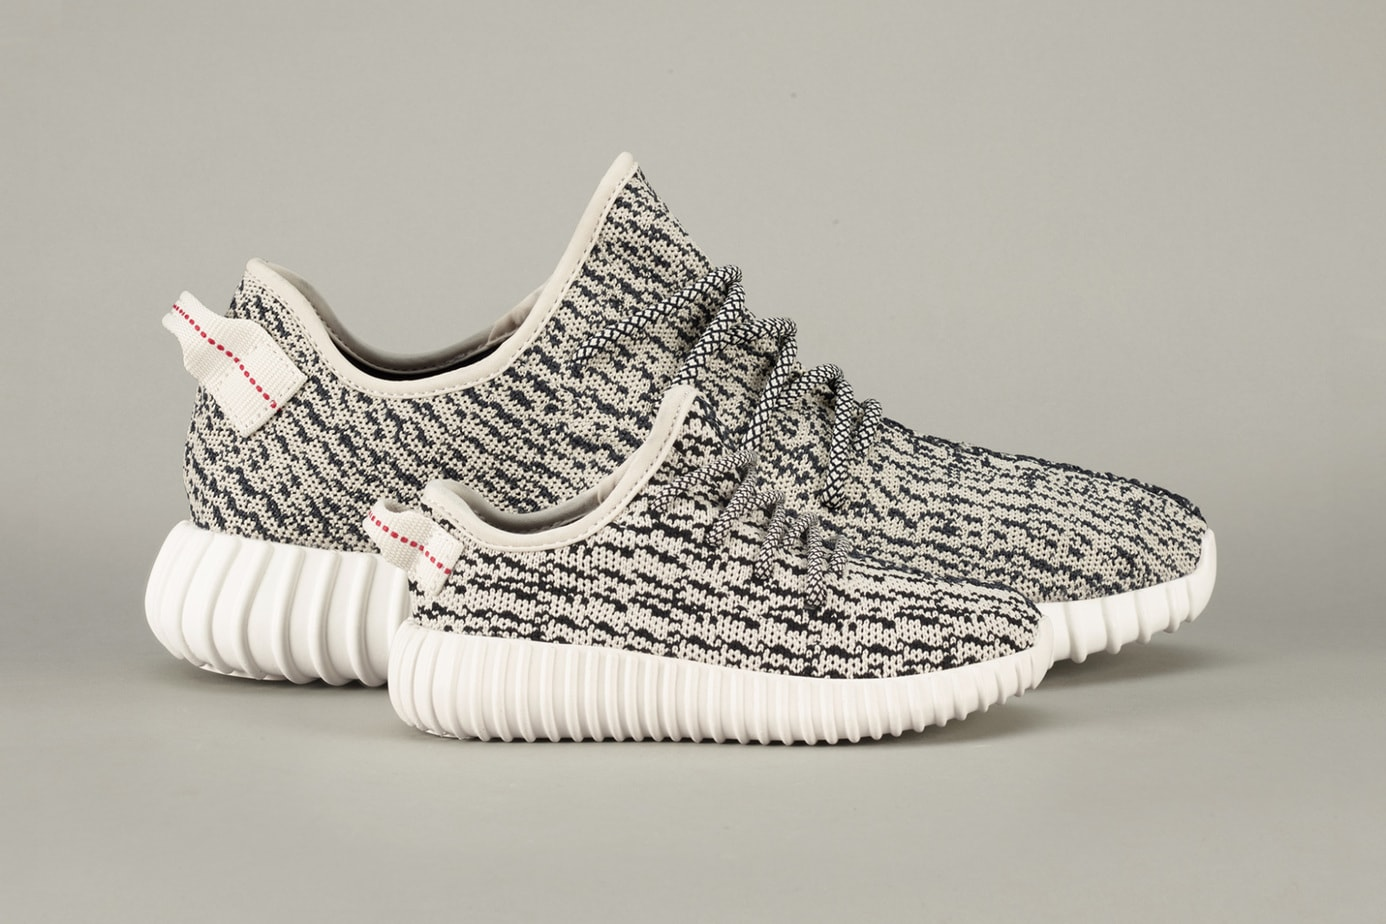 Where to Cop the adidas Yeezy 350 Boost 'Oxford Tan'